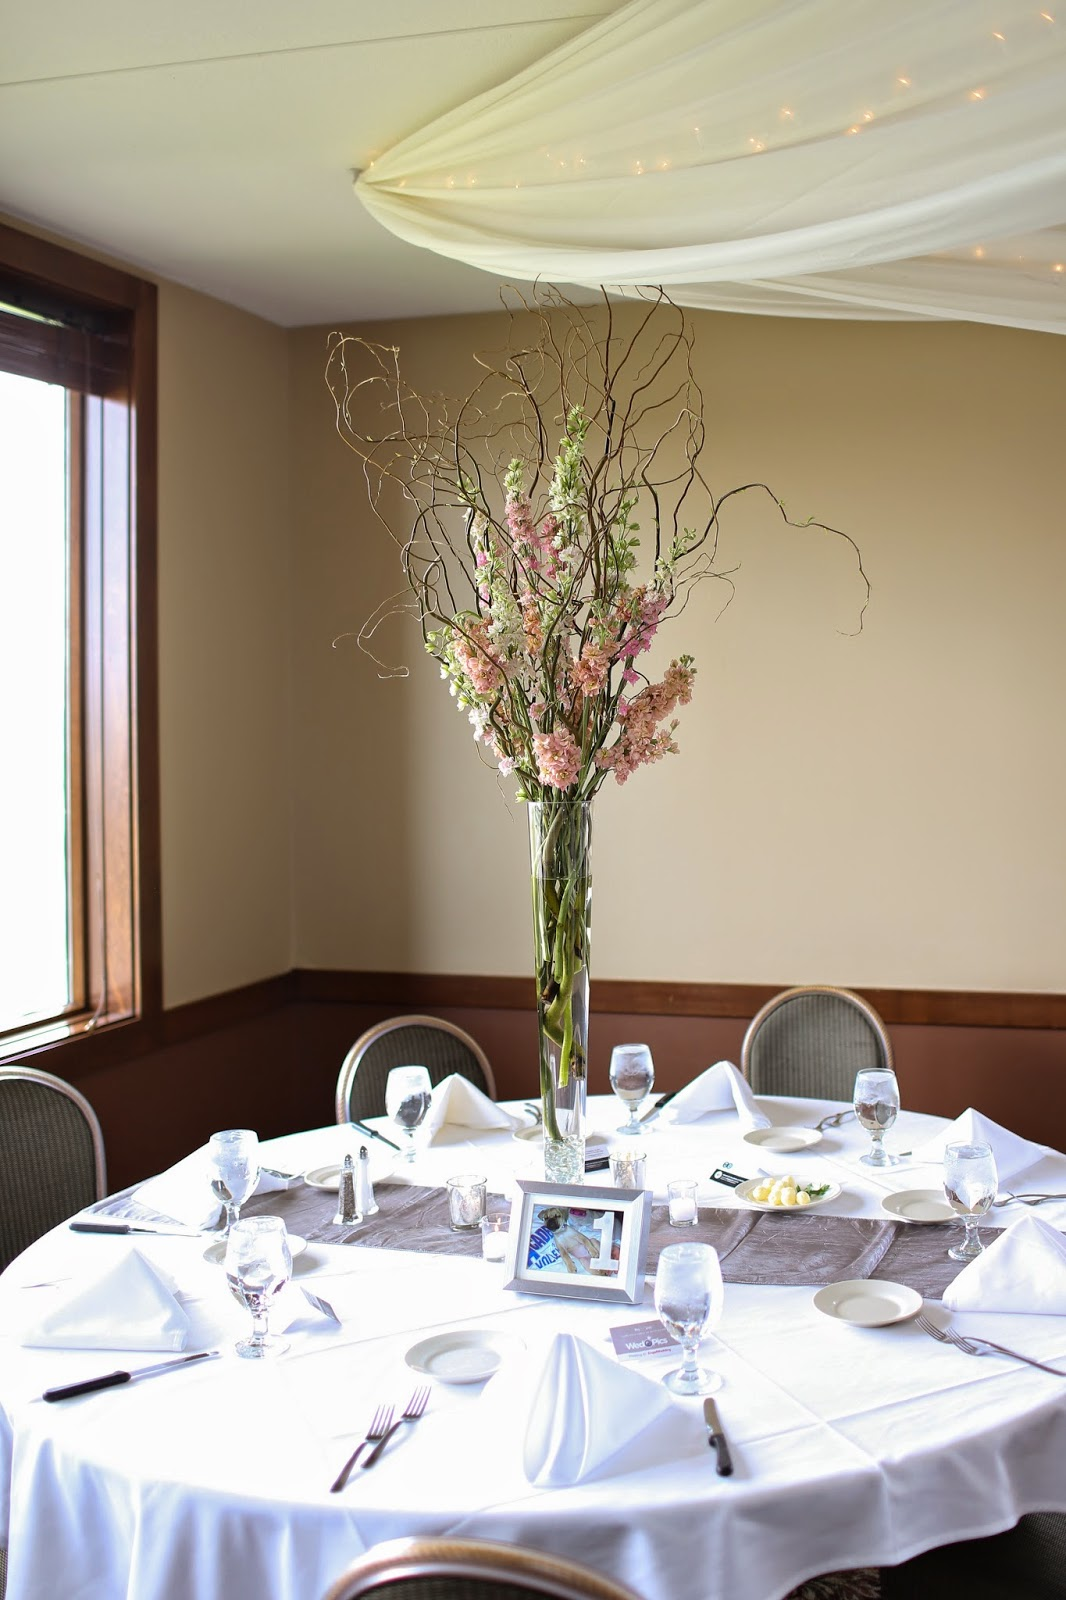 Forget me not floral events march 2015 the third style was a tall arrangement in a pilsner vase of curly willow larkspur and stock in pinks whites and corals again with silver table runners reviewsmspy